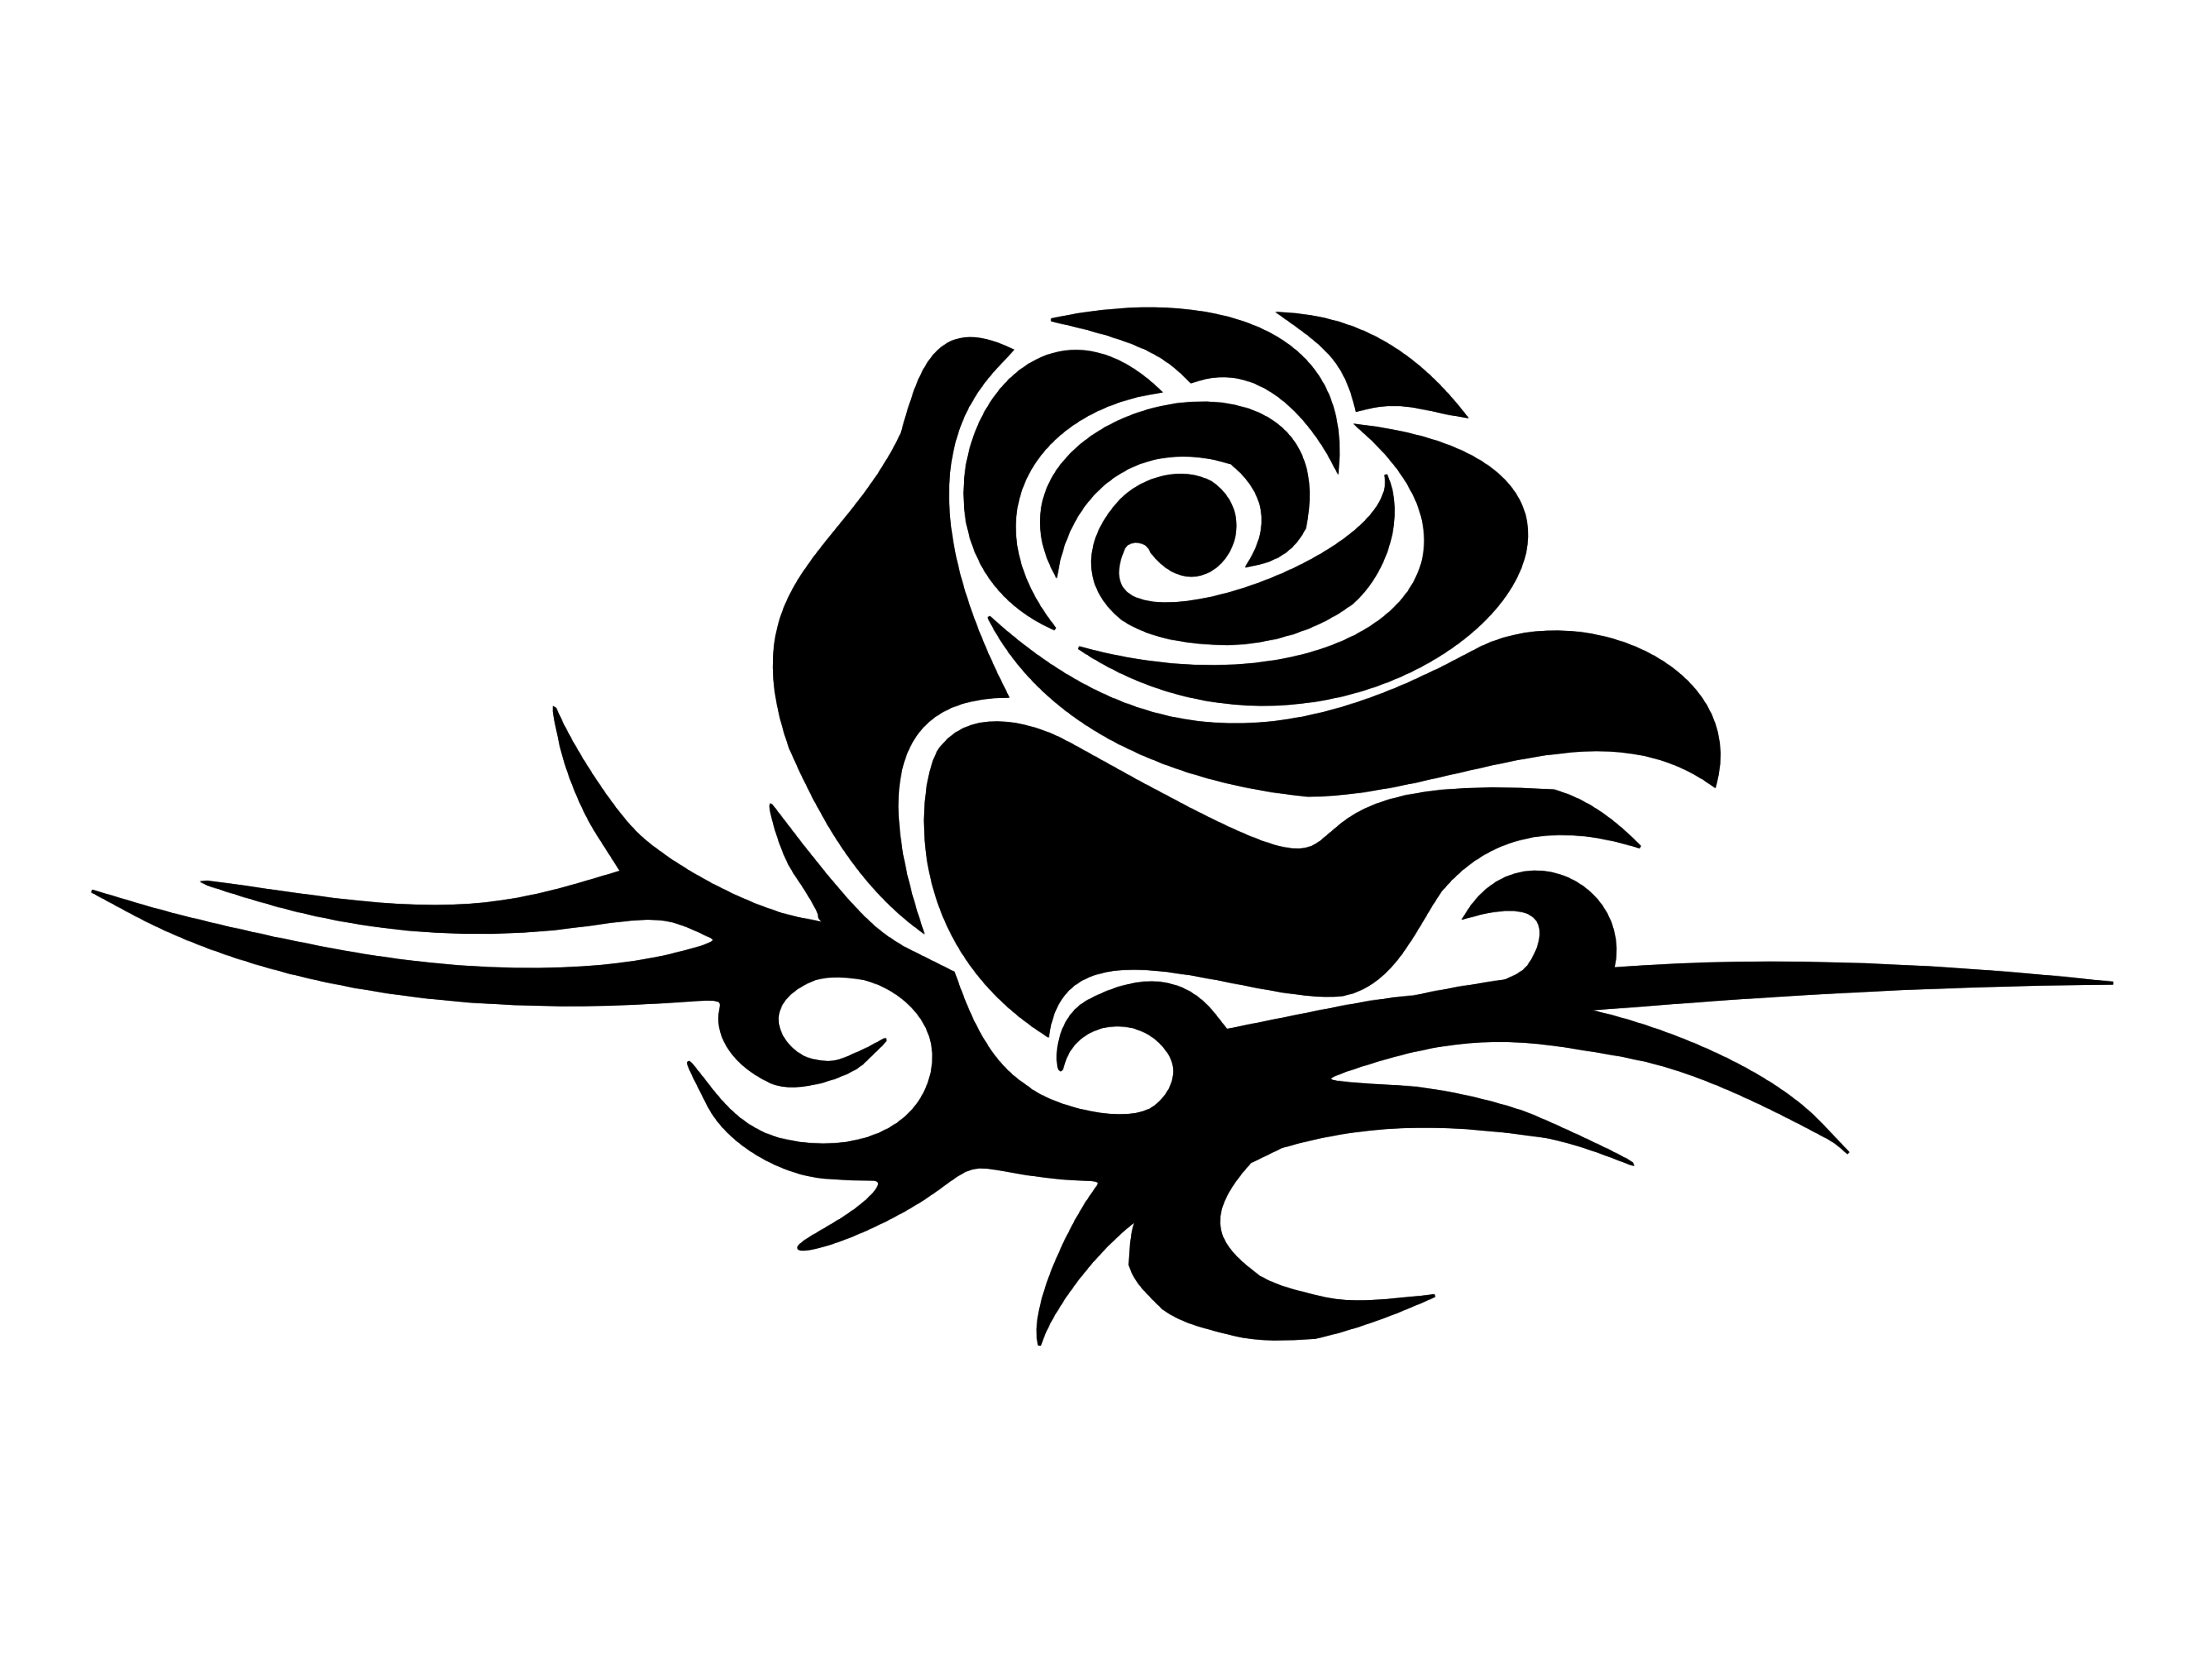 tribal-rose.png (2205×1654) | broderies | Pinterest | Rose ...